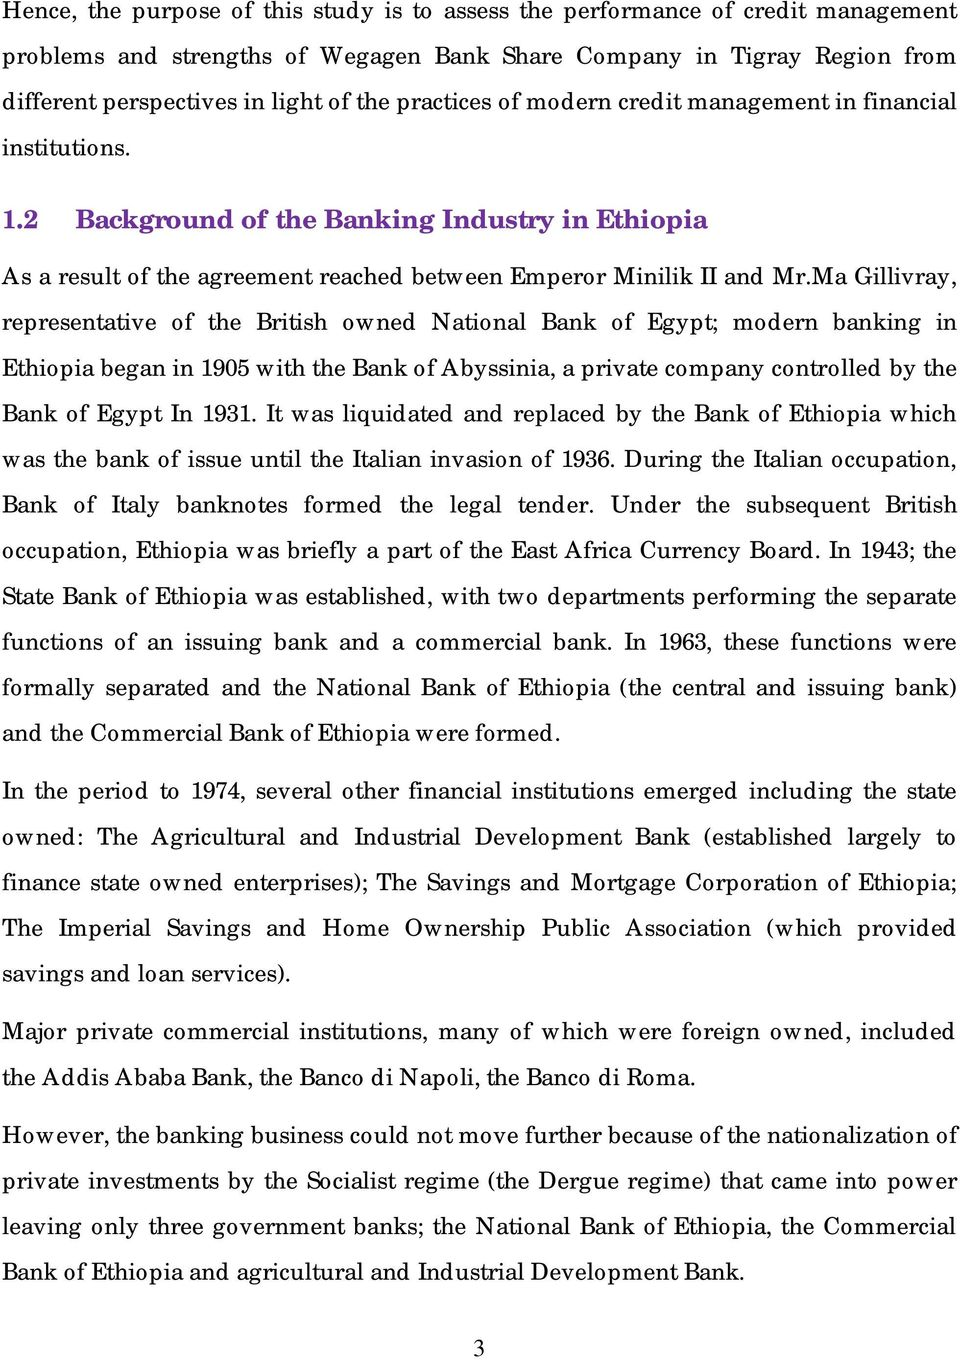 Ma Gillivray, representative of the British owned National Bank of Egypt; modern banking in Ethiopia began in 1905 with the Bank of Abyssinia, a private company controlled by the Bank of Egypt In